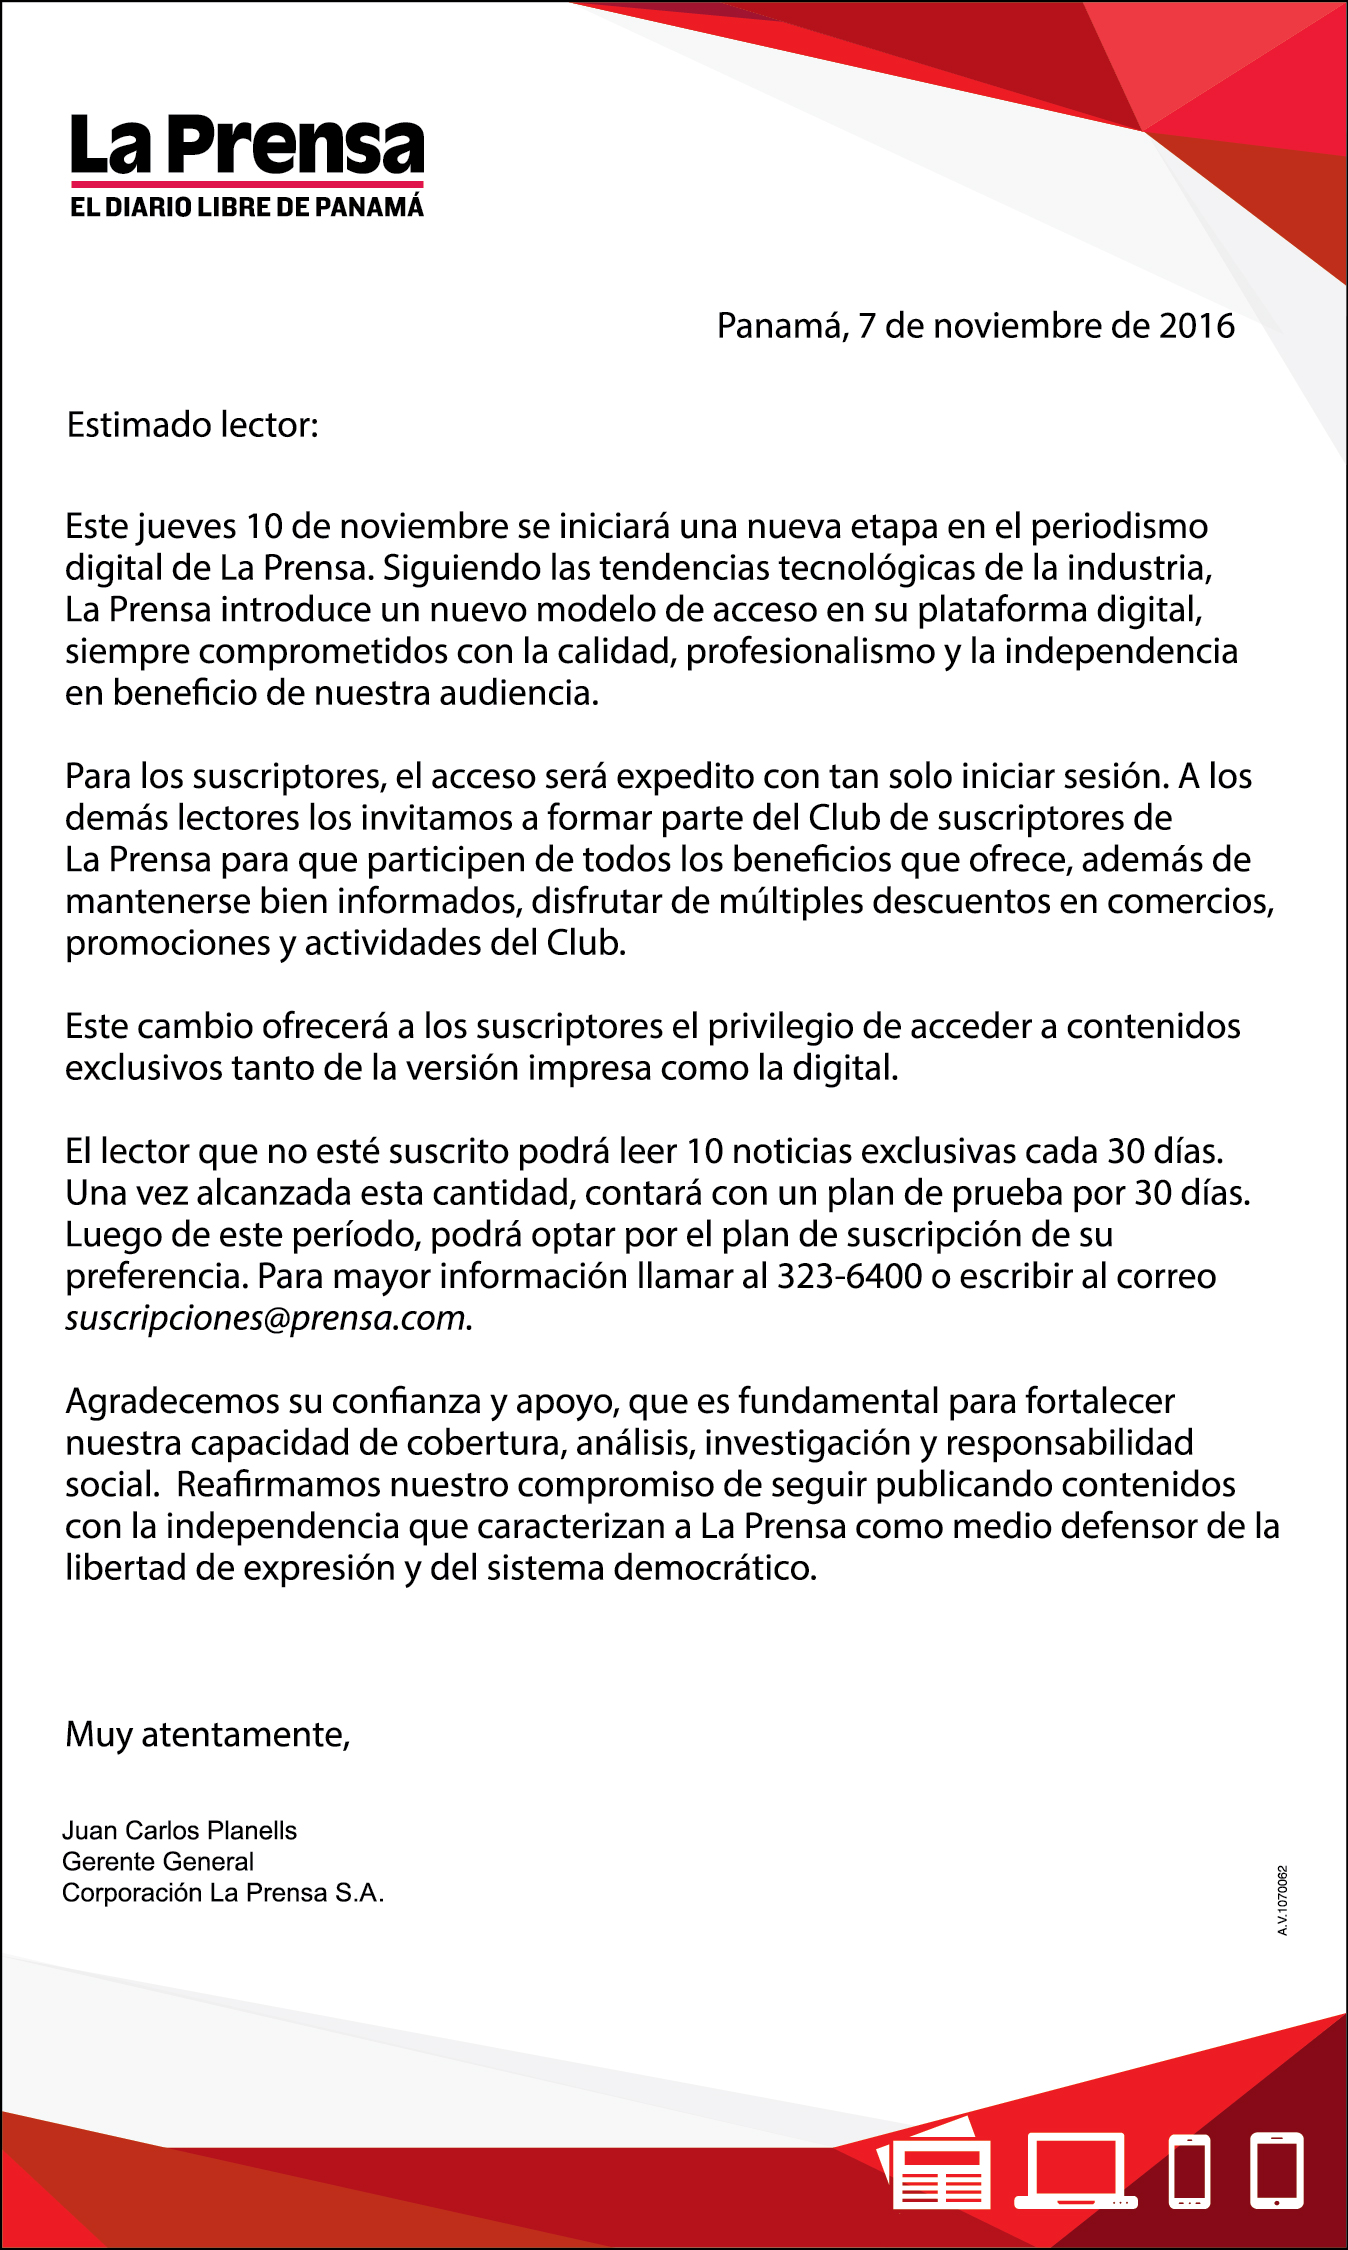 Image of a letter from La Prensa Corporation announcing the launch of a pay wall for online access to the newspaper.